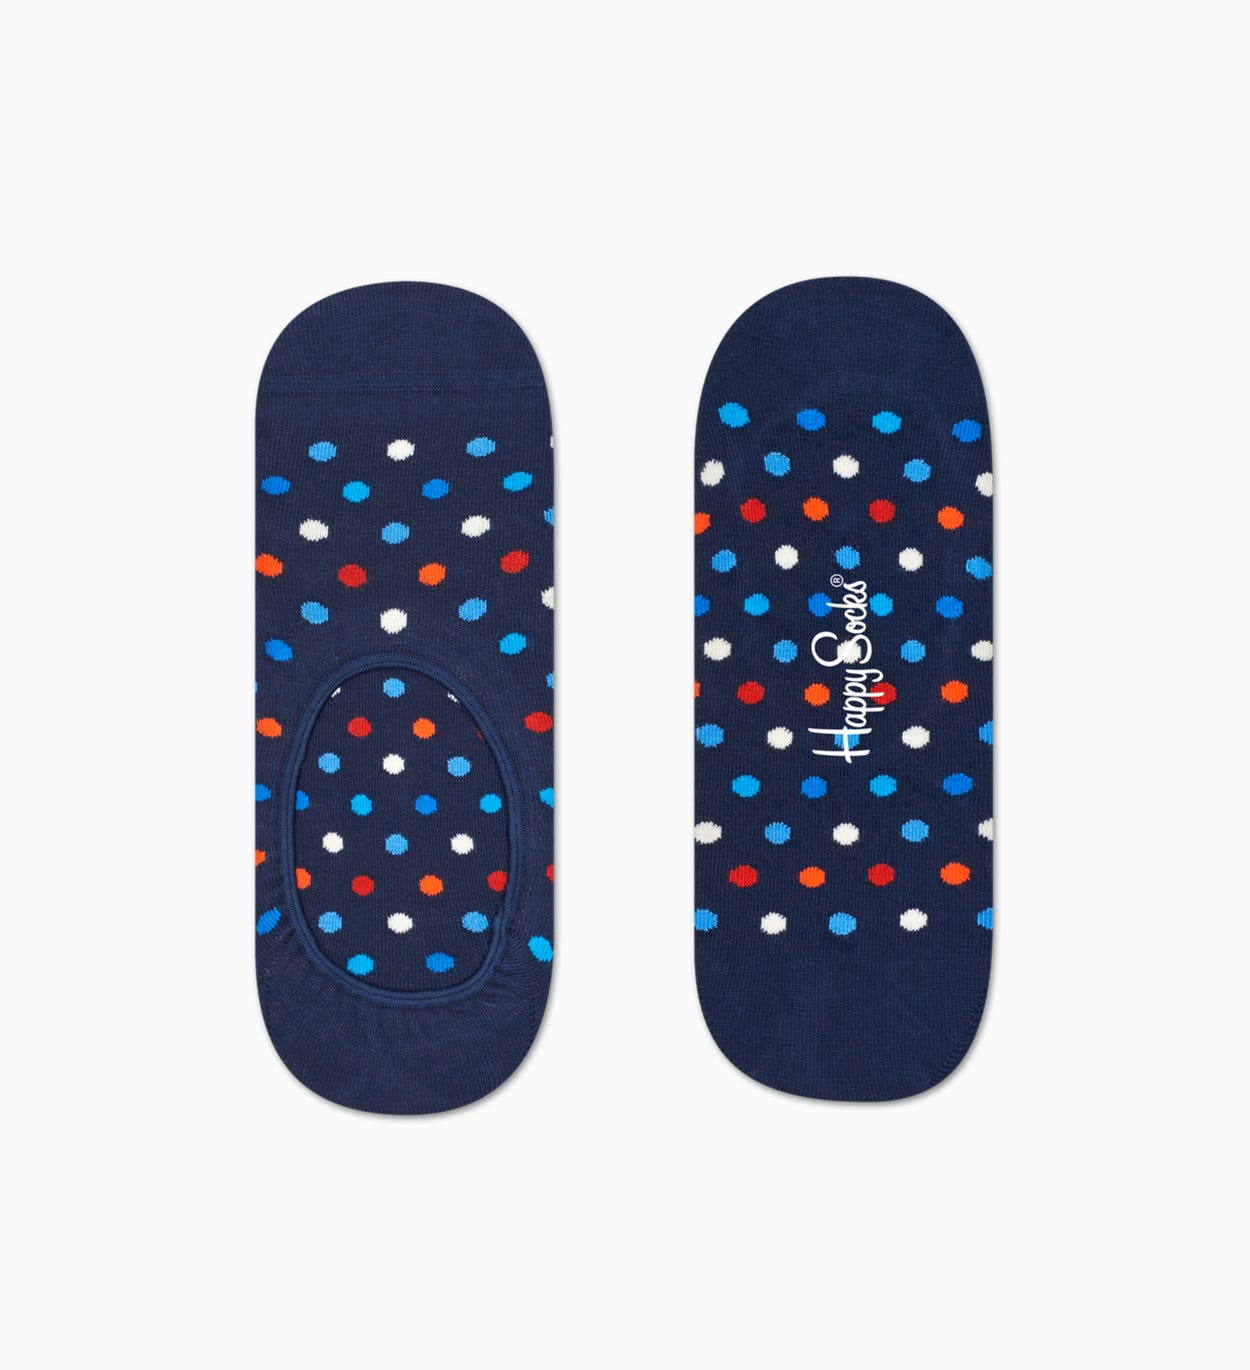 Blue Combed Cotton Socks | Happy Socks